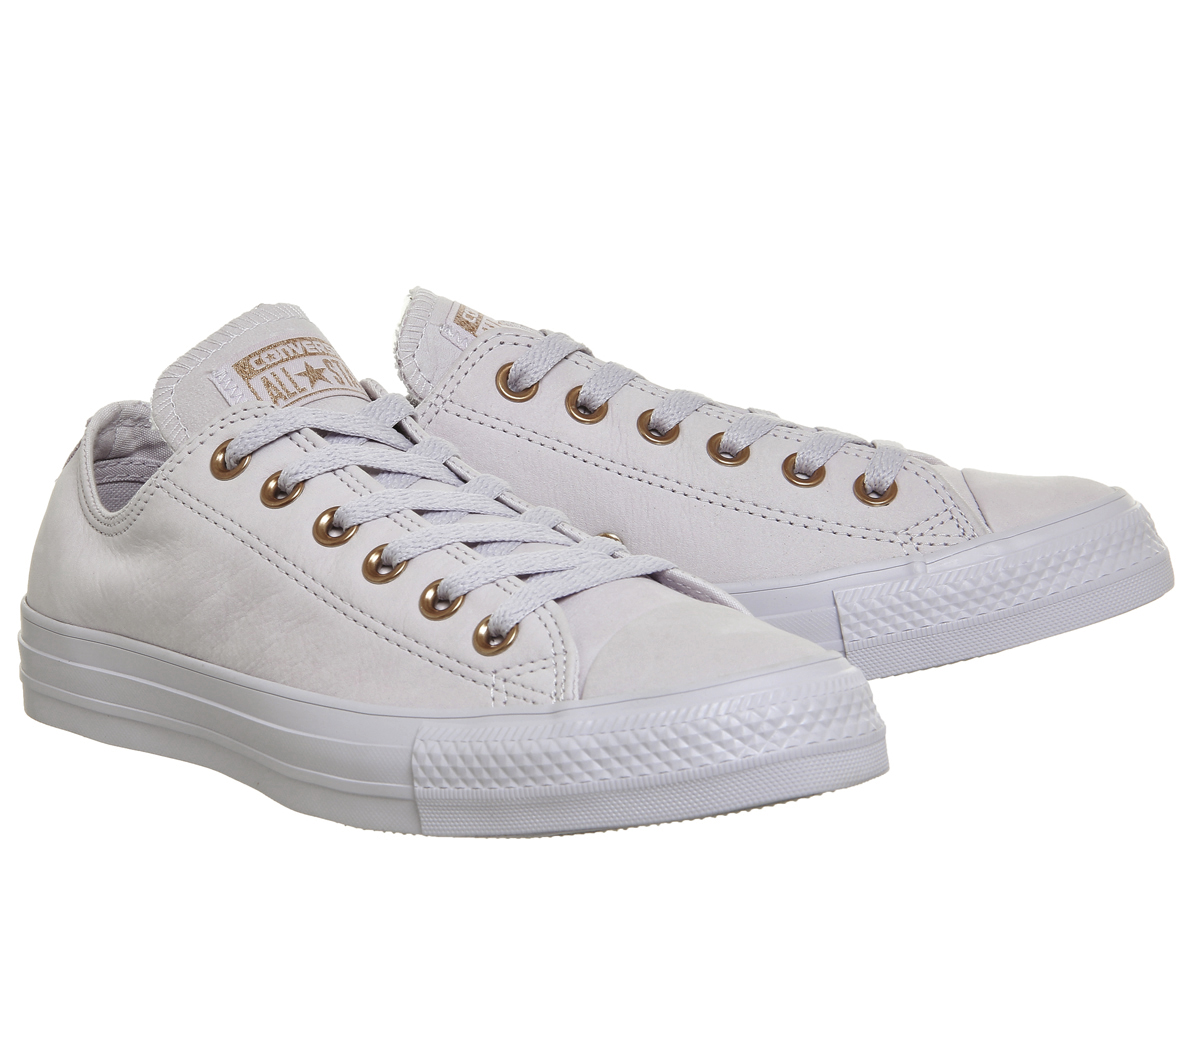 fa82fb40aec3 Womens Converse All Star Low Leather BARELY VIOLET ROSE GOLD ...